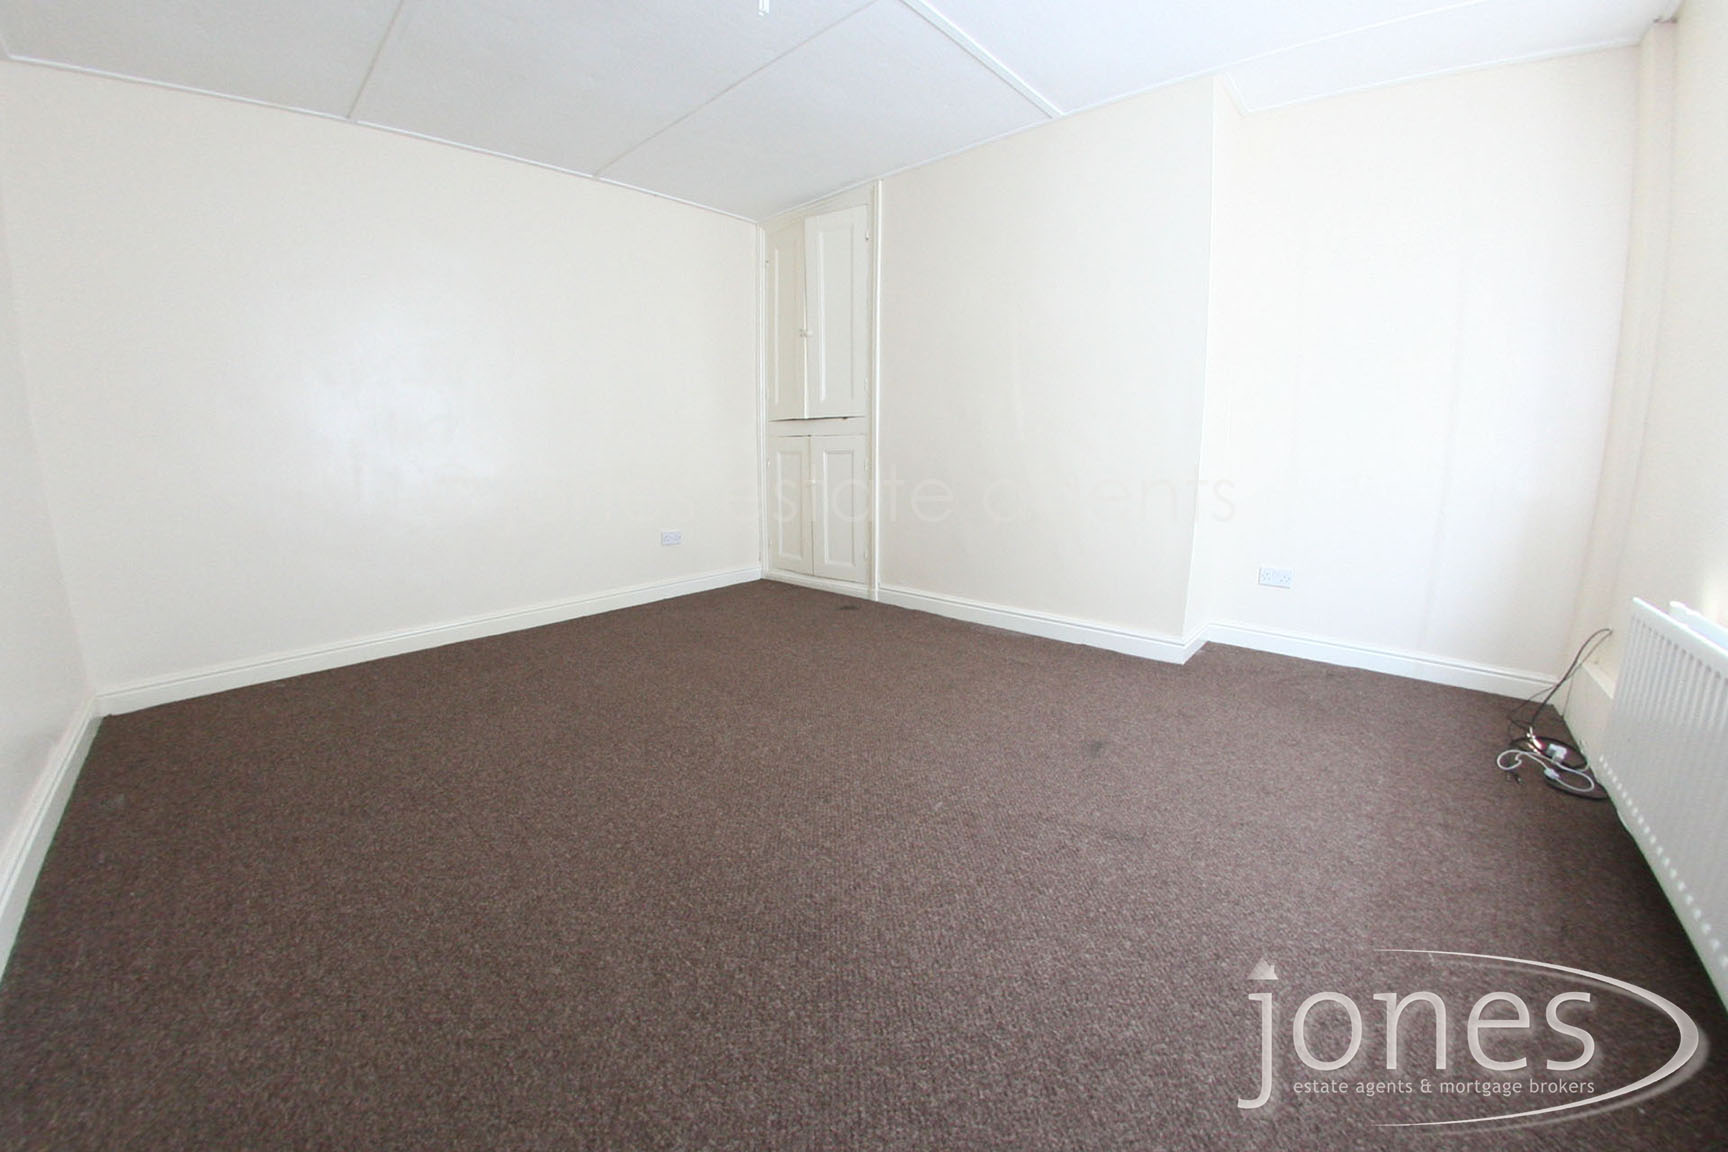 Home for Sale Let - Photo 02 North Road West, Wingate, TS28 5AP